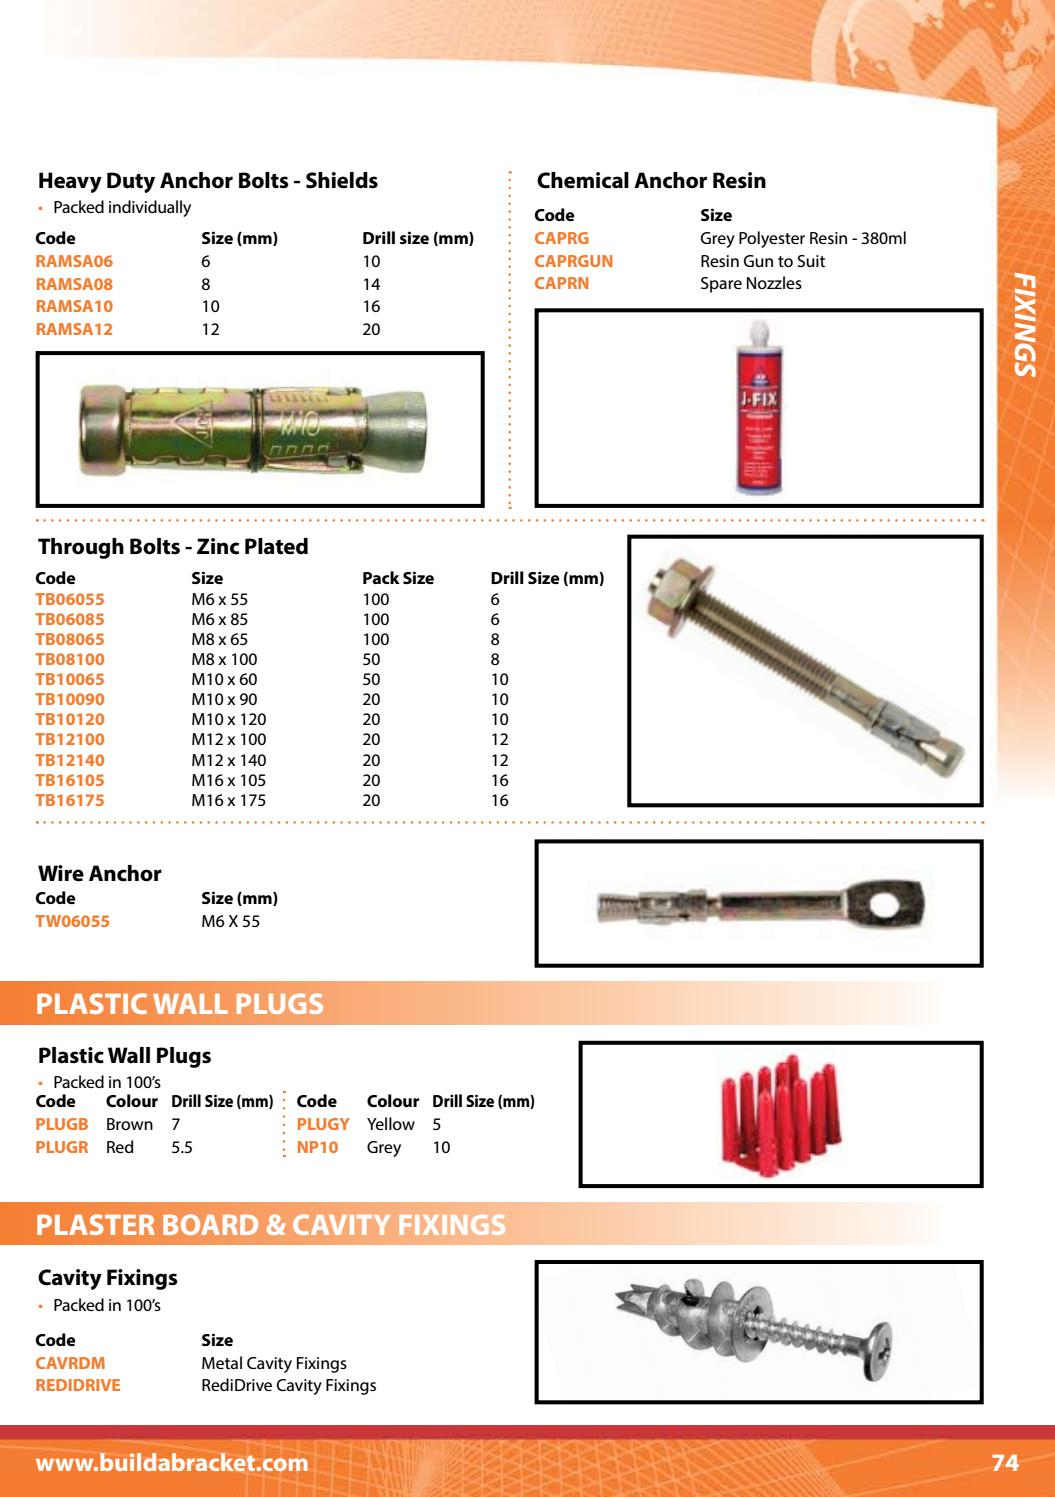 R&M Fixings and Support Catalogue by David Bell - issuu